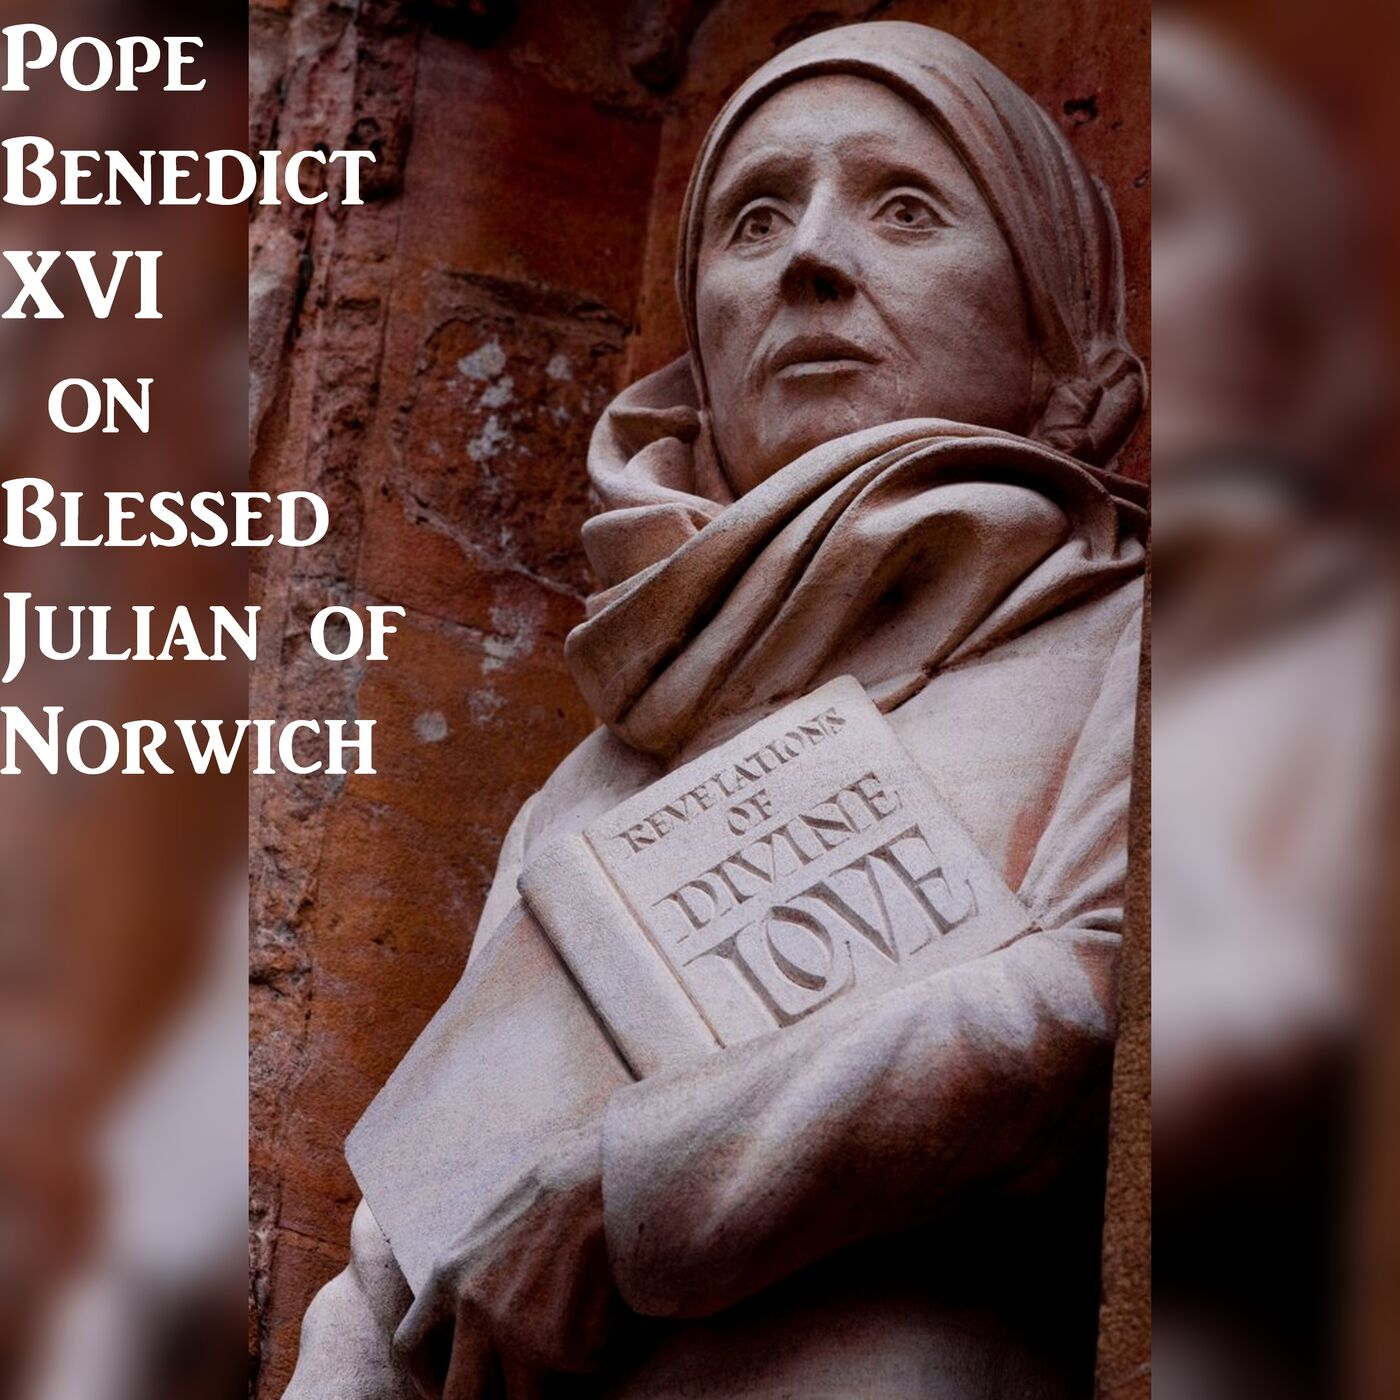 Pope Benedict XVI on Blessed Julian of Norwich